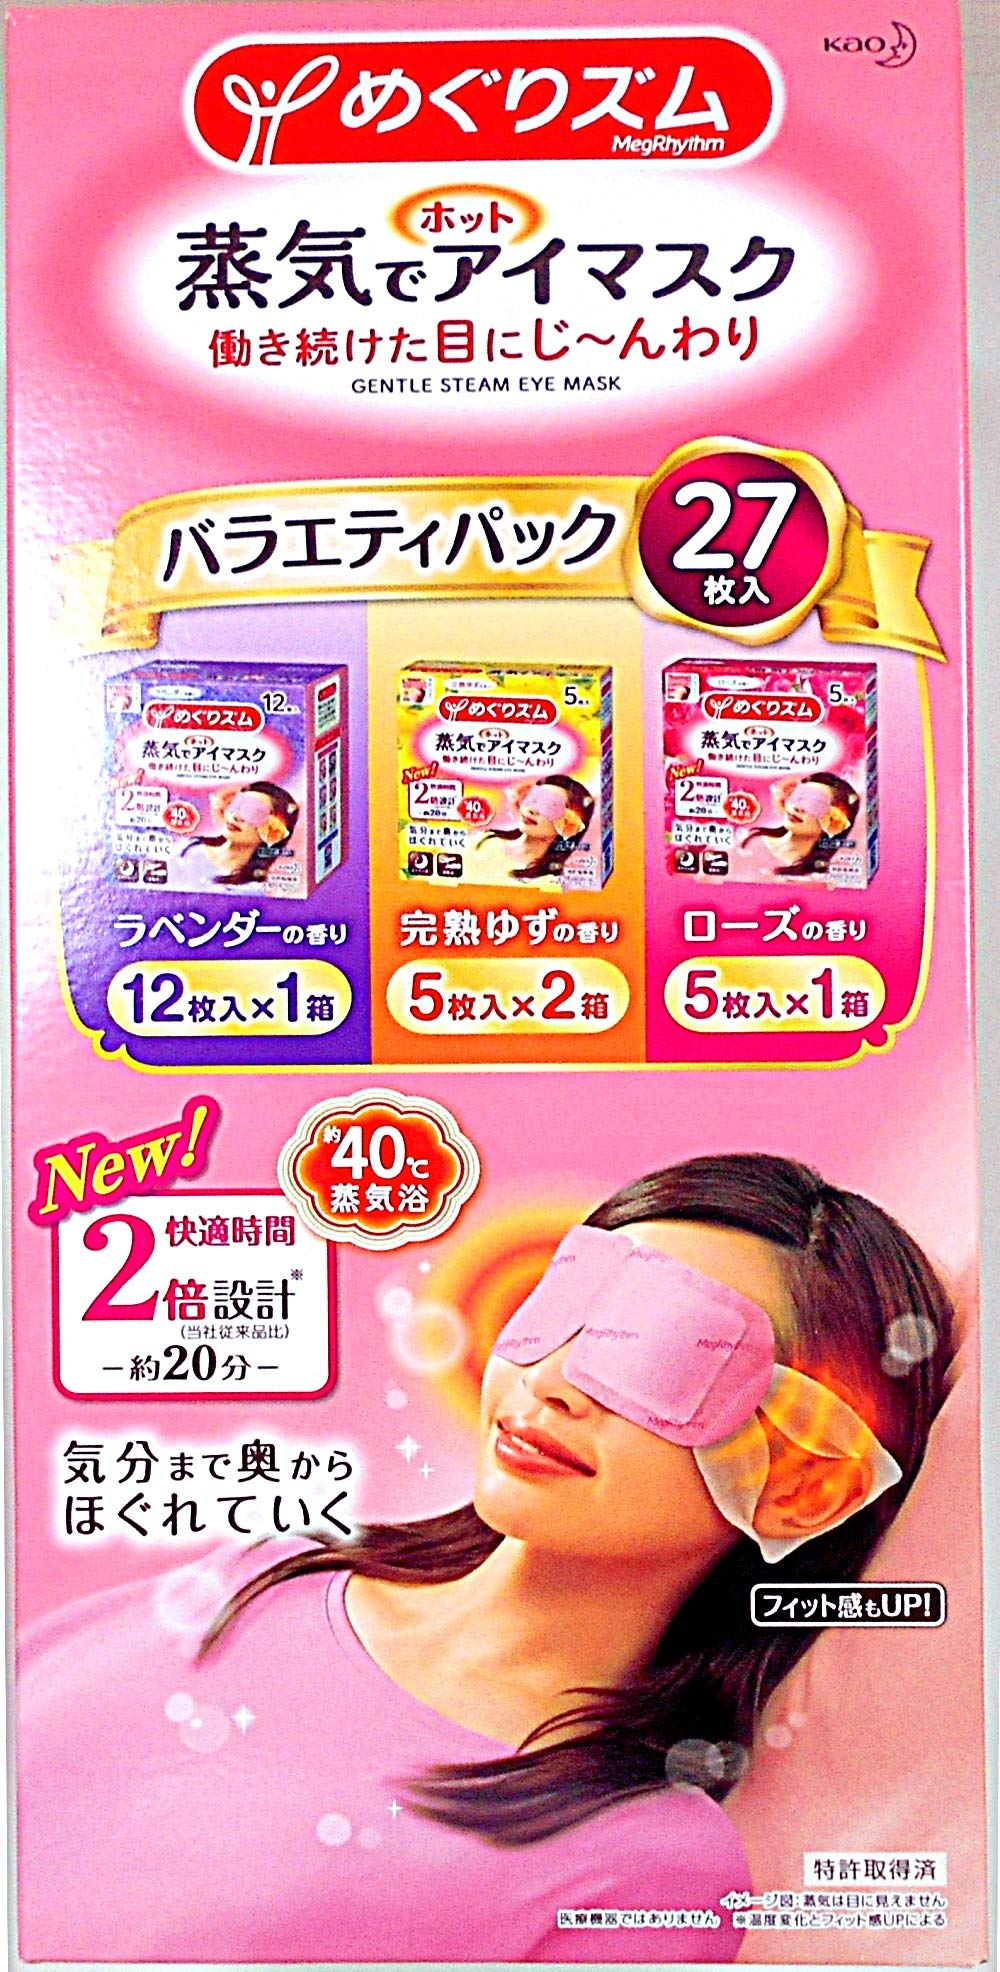 Kao,Megurism Countermeasure Steam with 27 Hot Steam Warming Eye Mask・ Lavender 12Sheets,Yuzu10 Sheets,  Rose 5Sheets Assorted Flavors Ideal Gift Variety Pack